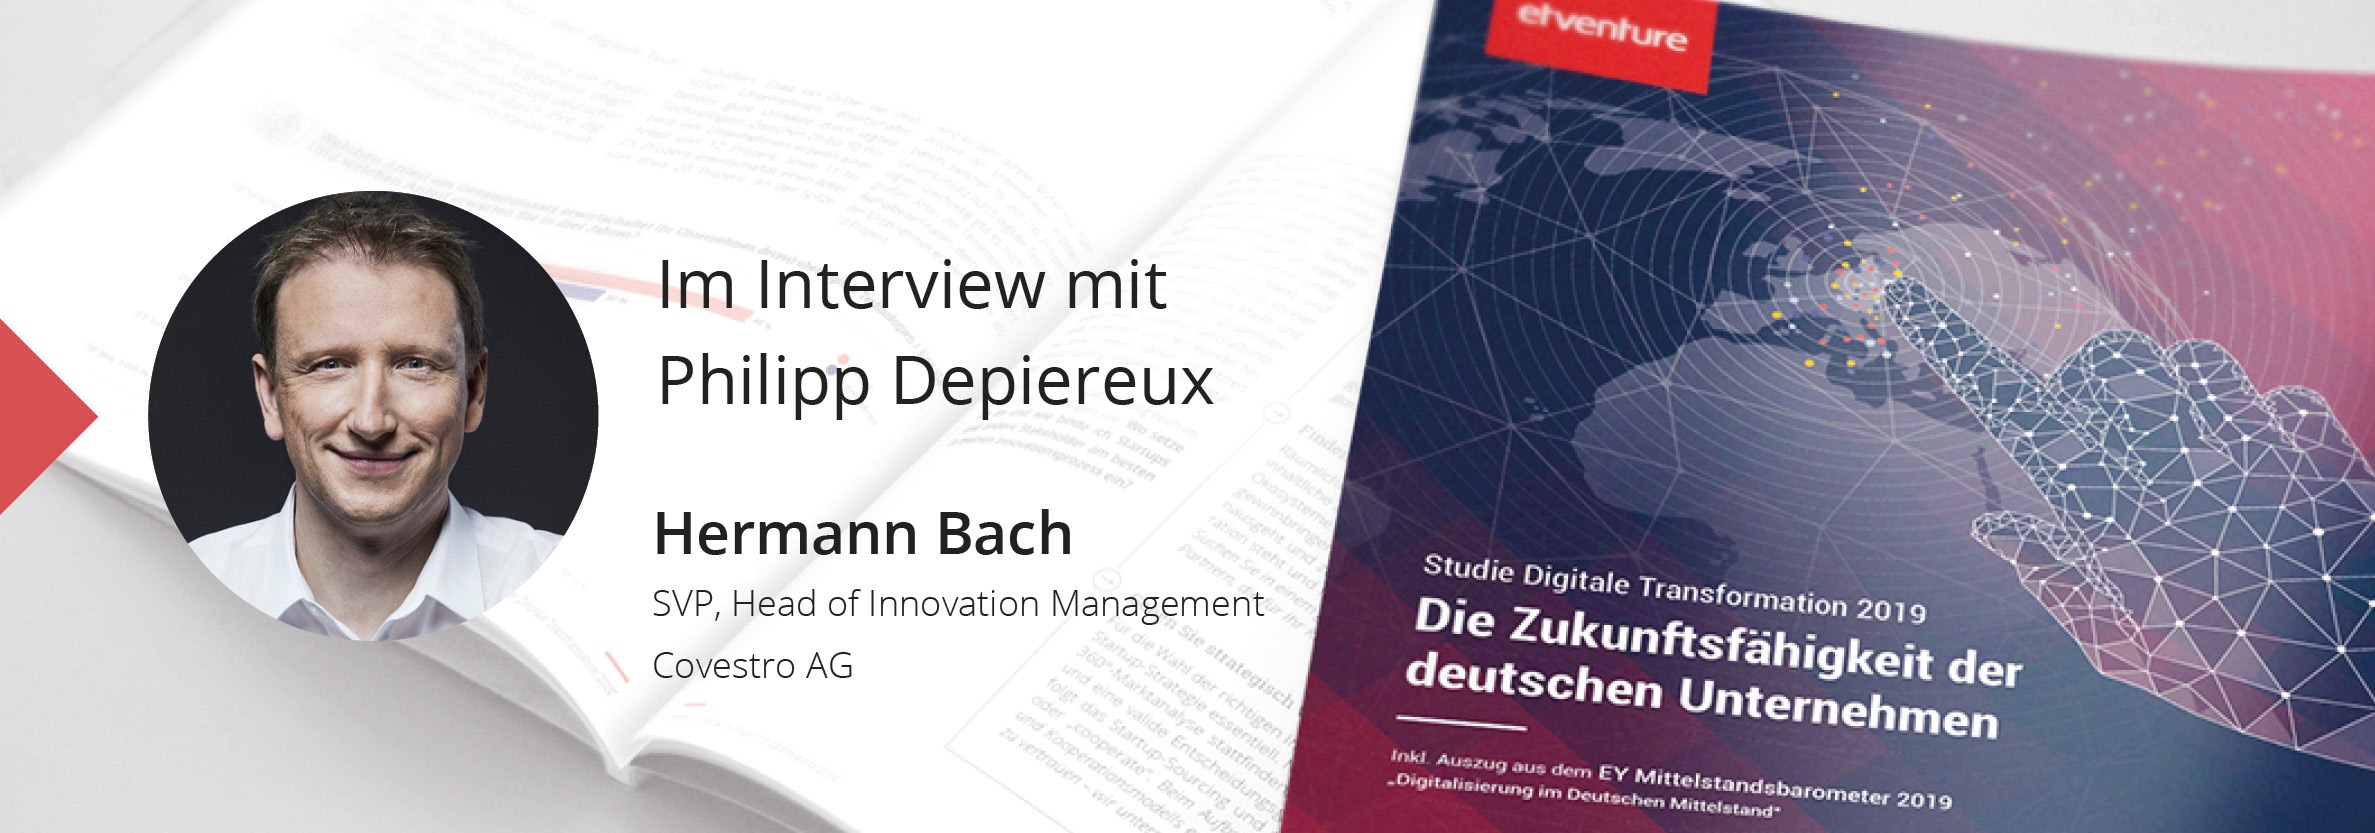 Hermann Bach Interview - Blog: Studie 2019